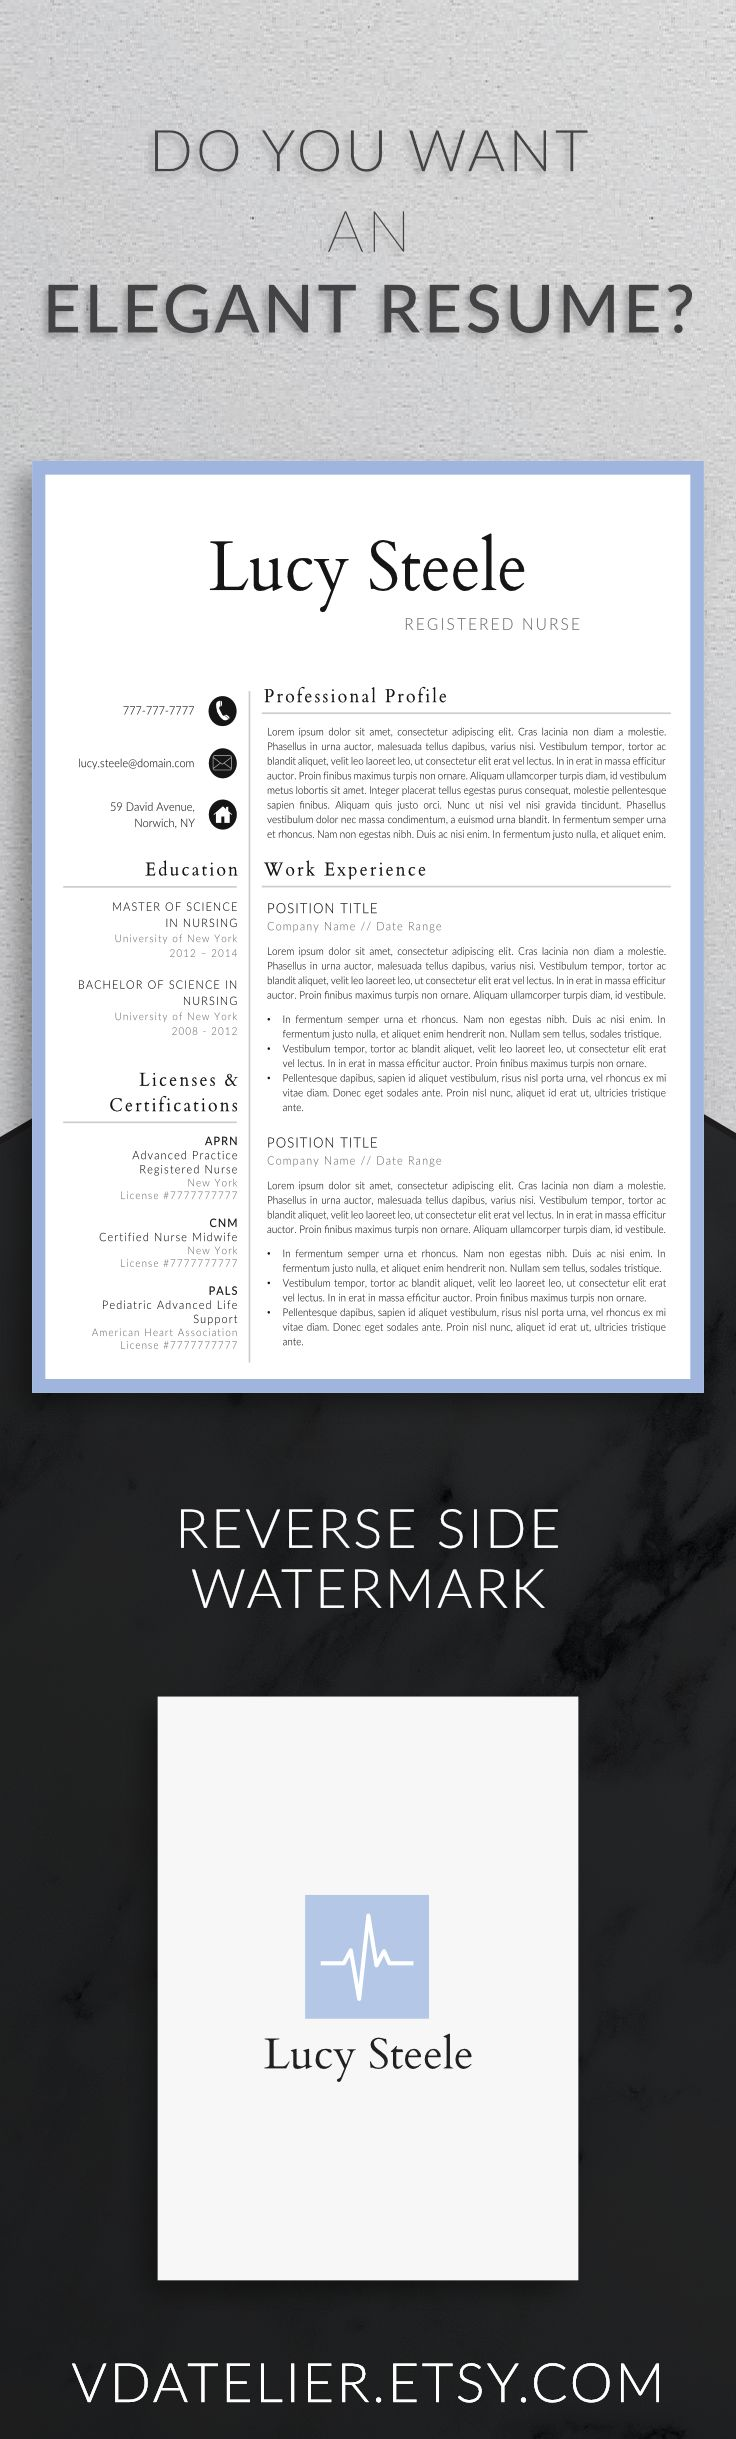 38 Best Nurse Resume Templates Images On Pinterest | Resume